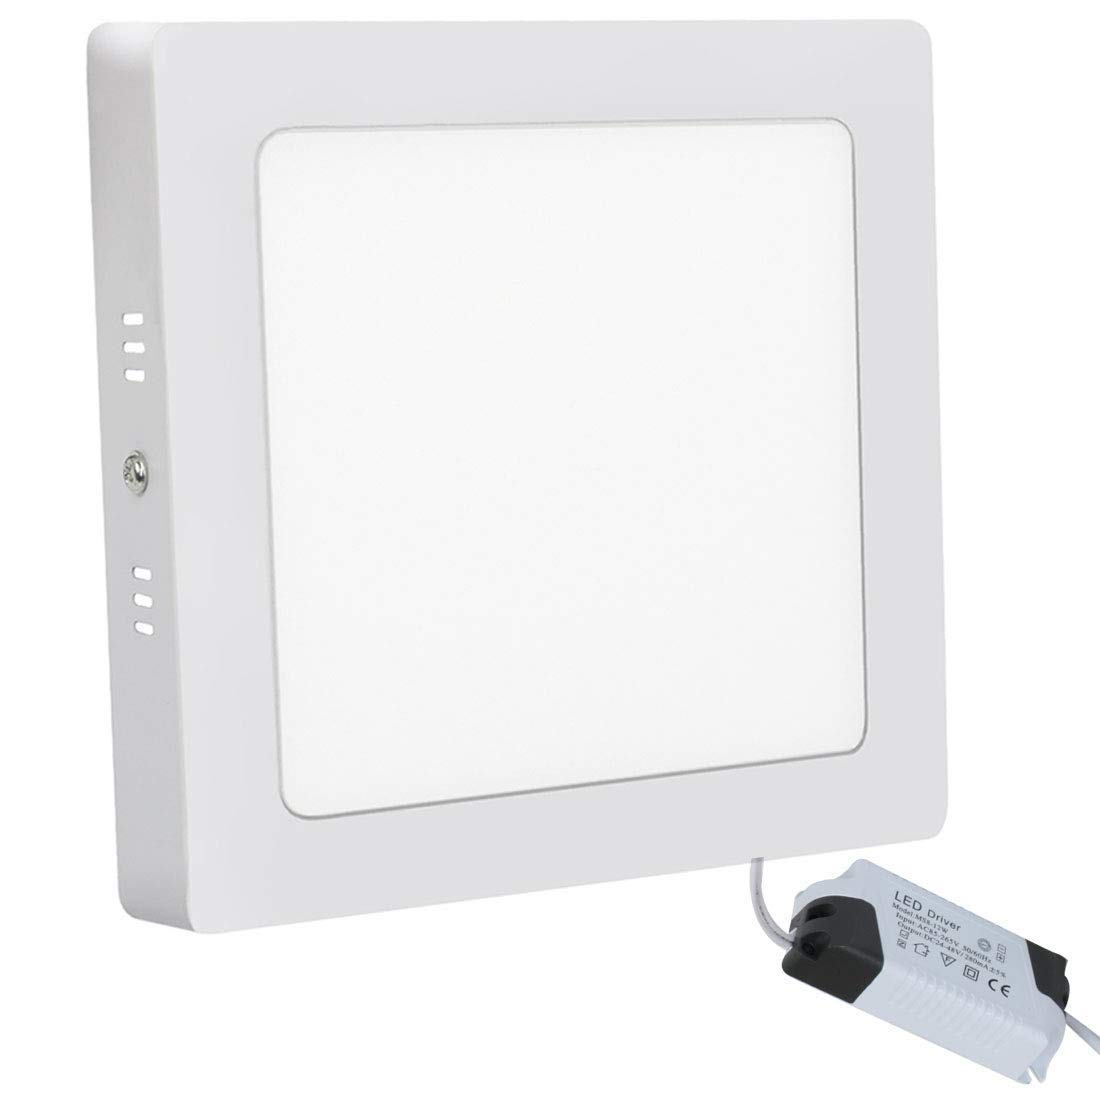 12W LED Ceiling Panel Light Wall Ceiling Down Lights Square Lamp for Living Room Bathroom Kitchen Corridor Conference Room Energy Saving 3000K 720LM Warm White